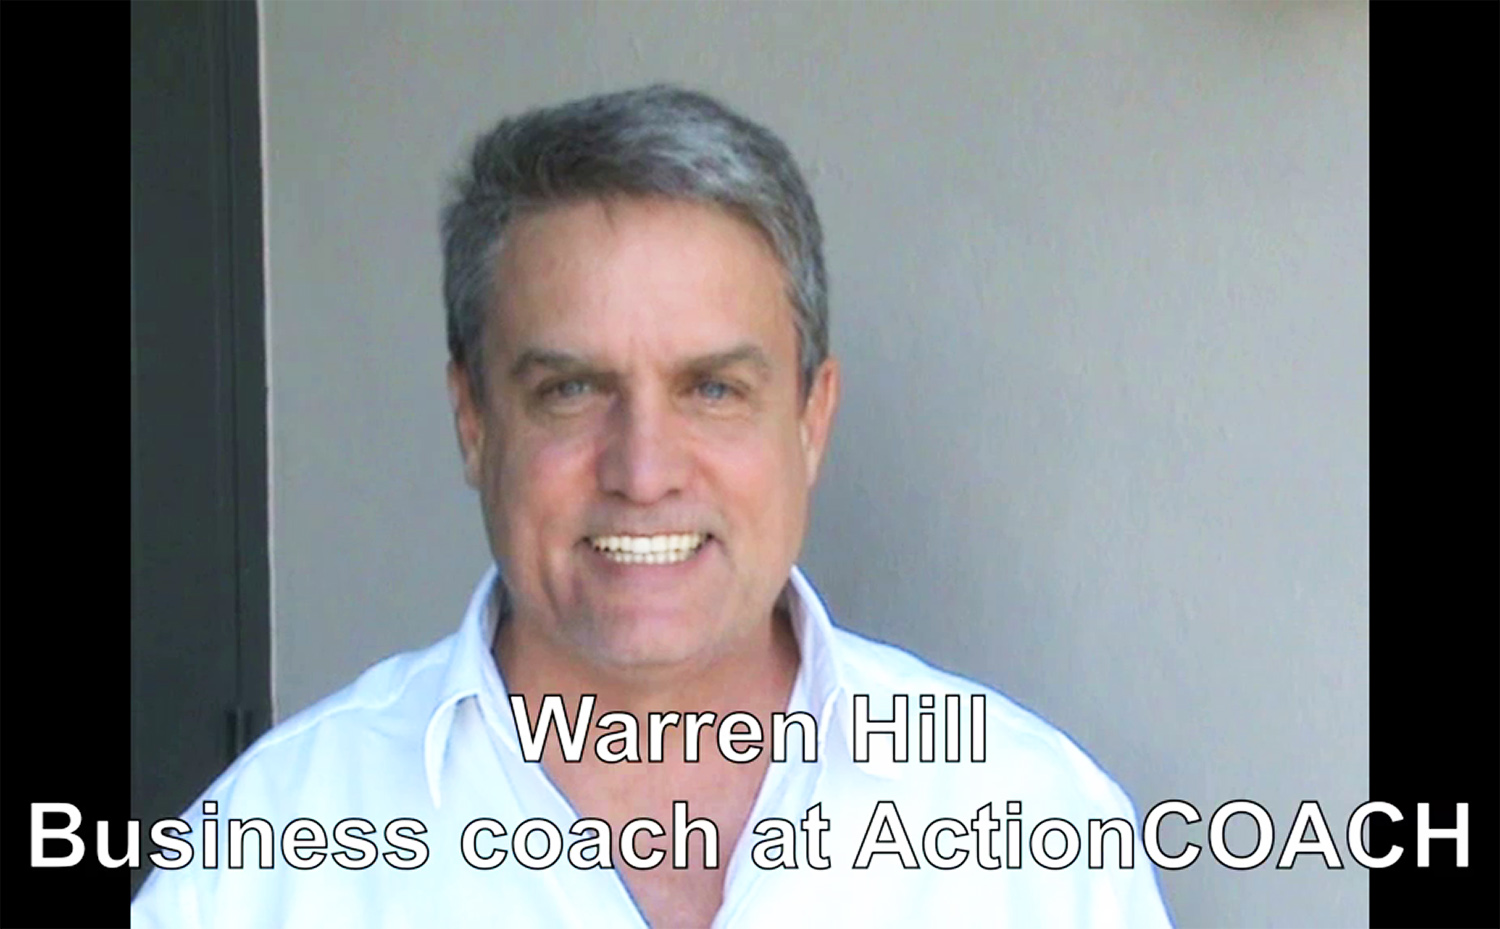 warren hill proud to be an actioncoach featured image